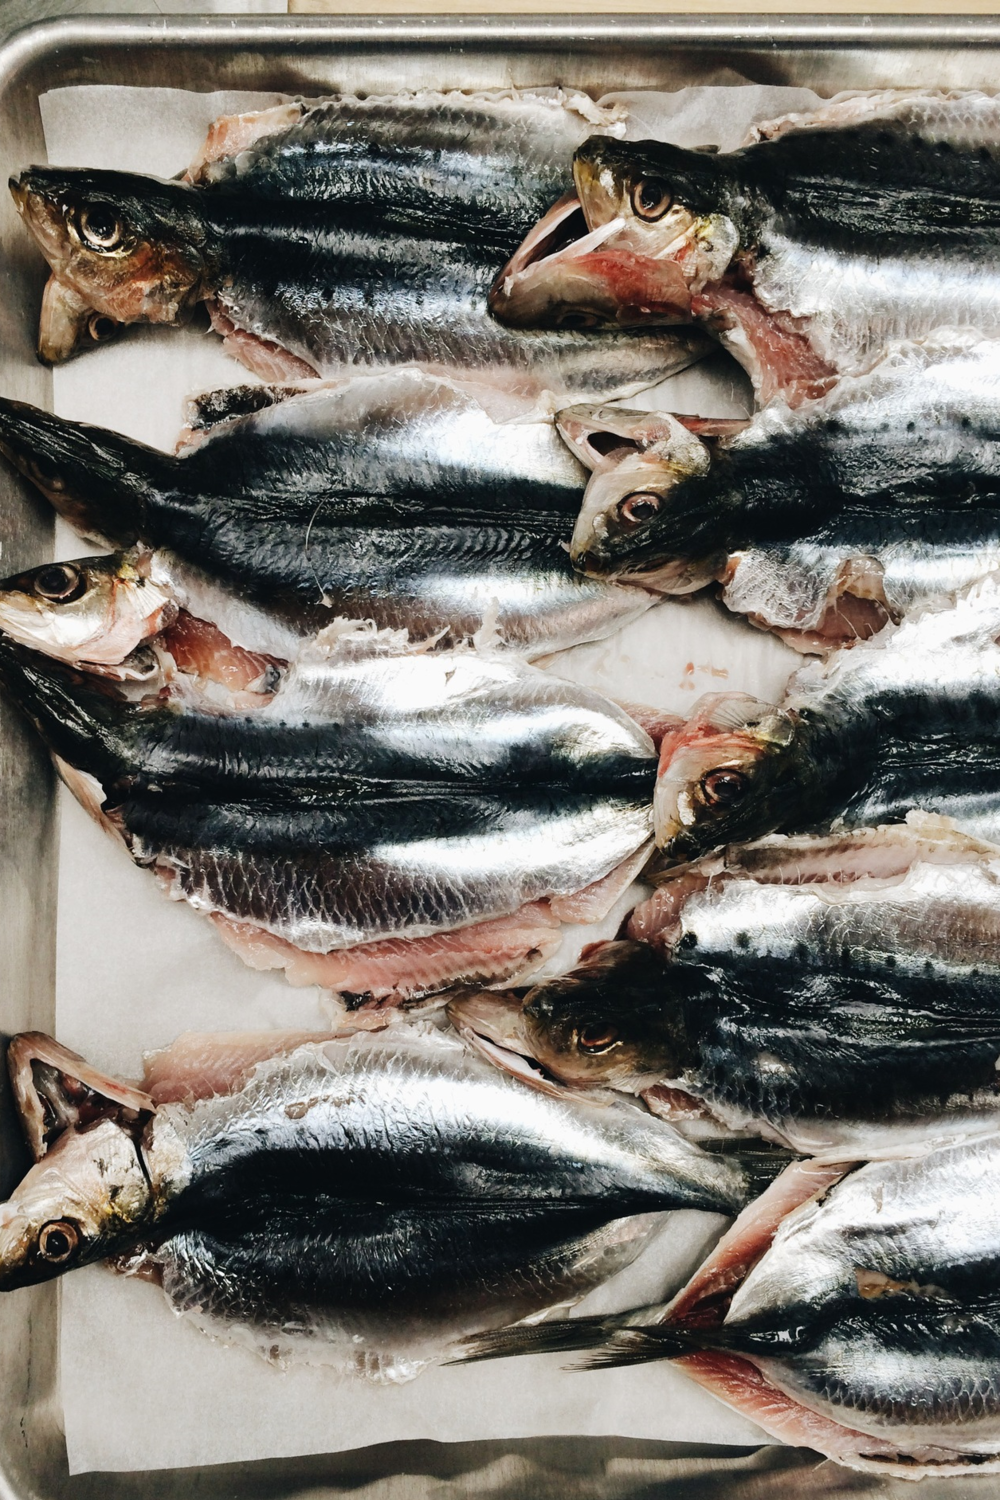 Fresh branzino at Via Carota, where cherished downtown chefs Jody Williams and Rita Sodi cook deeply appealing Italian food, honoring their local markets and farms from one season to the next.